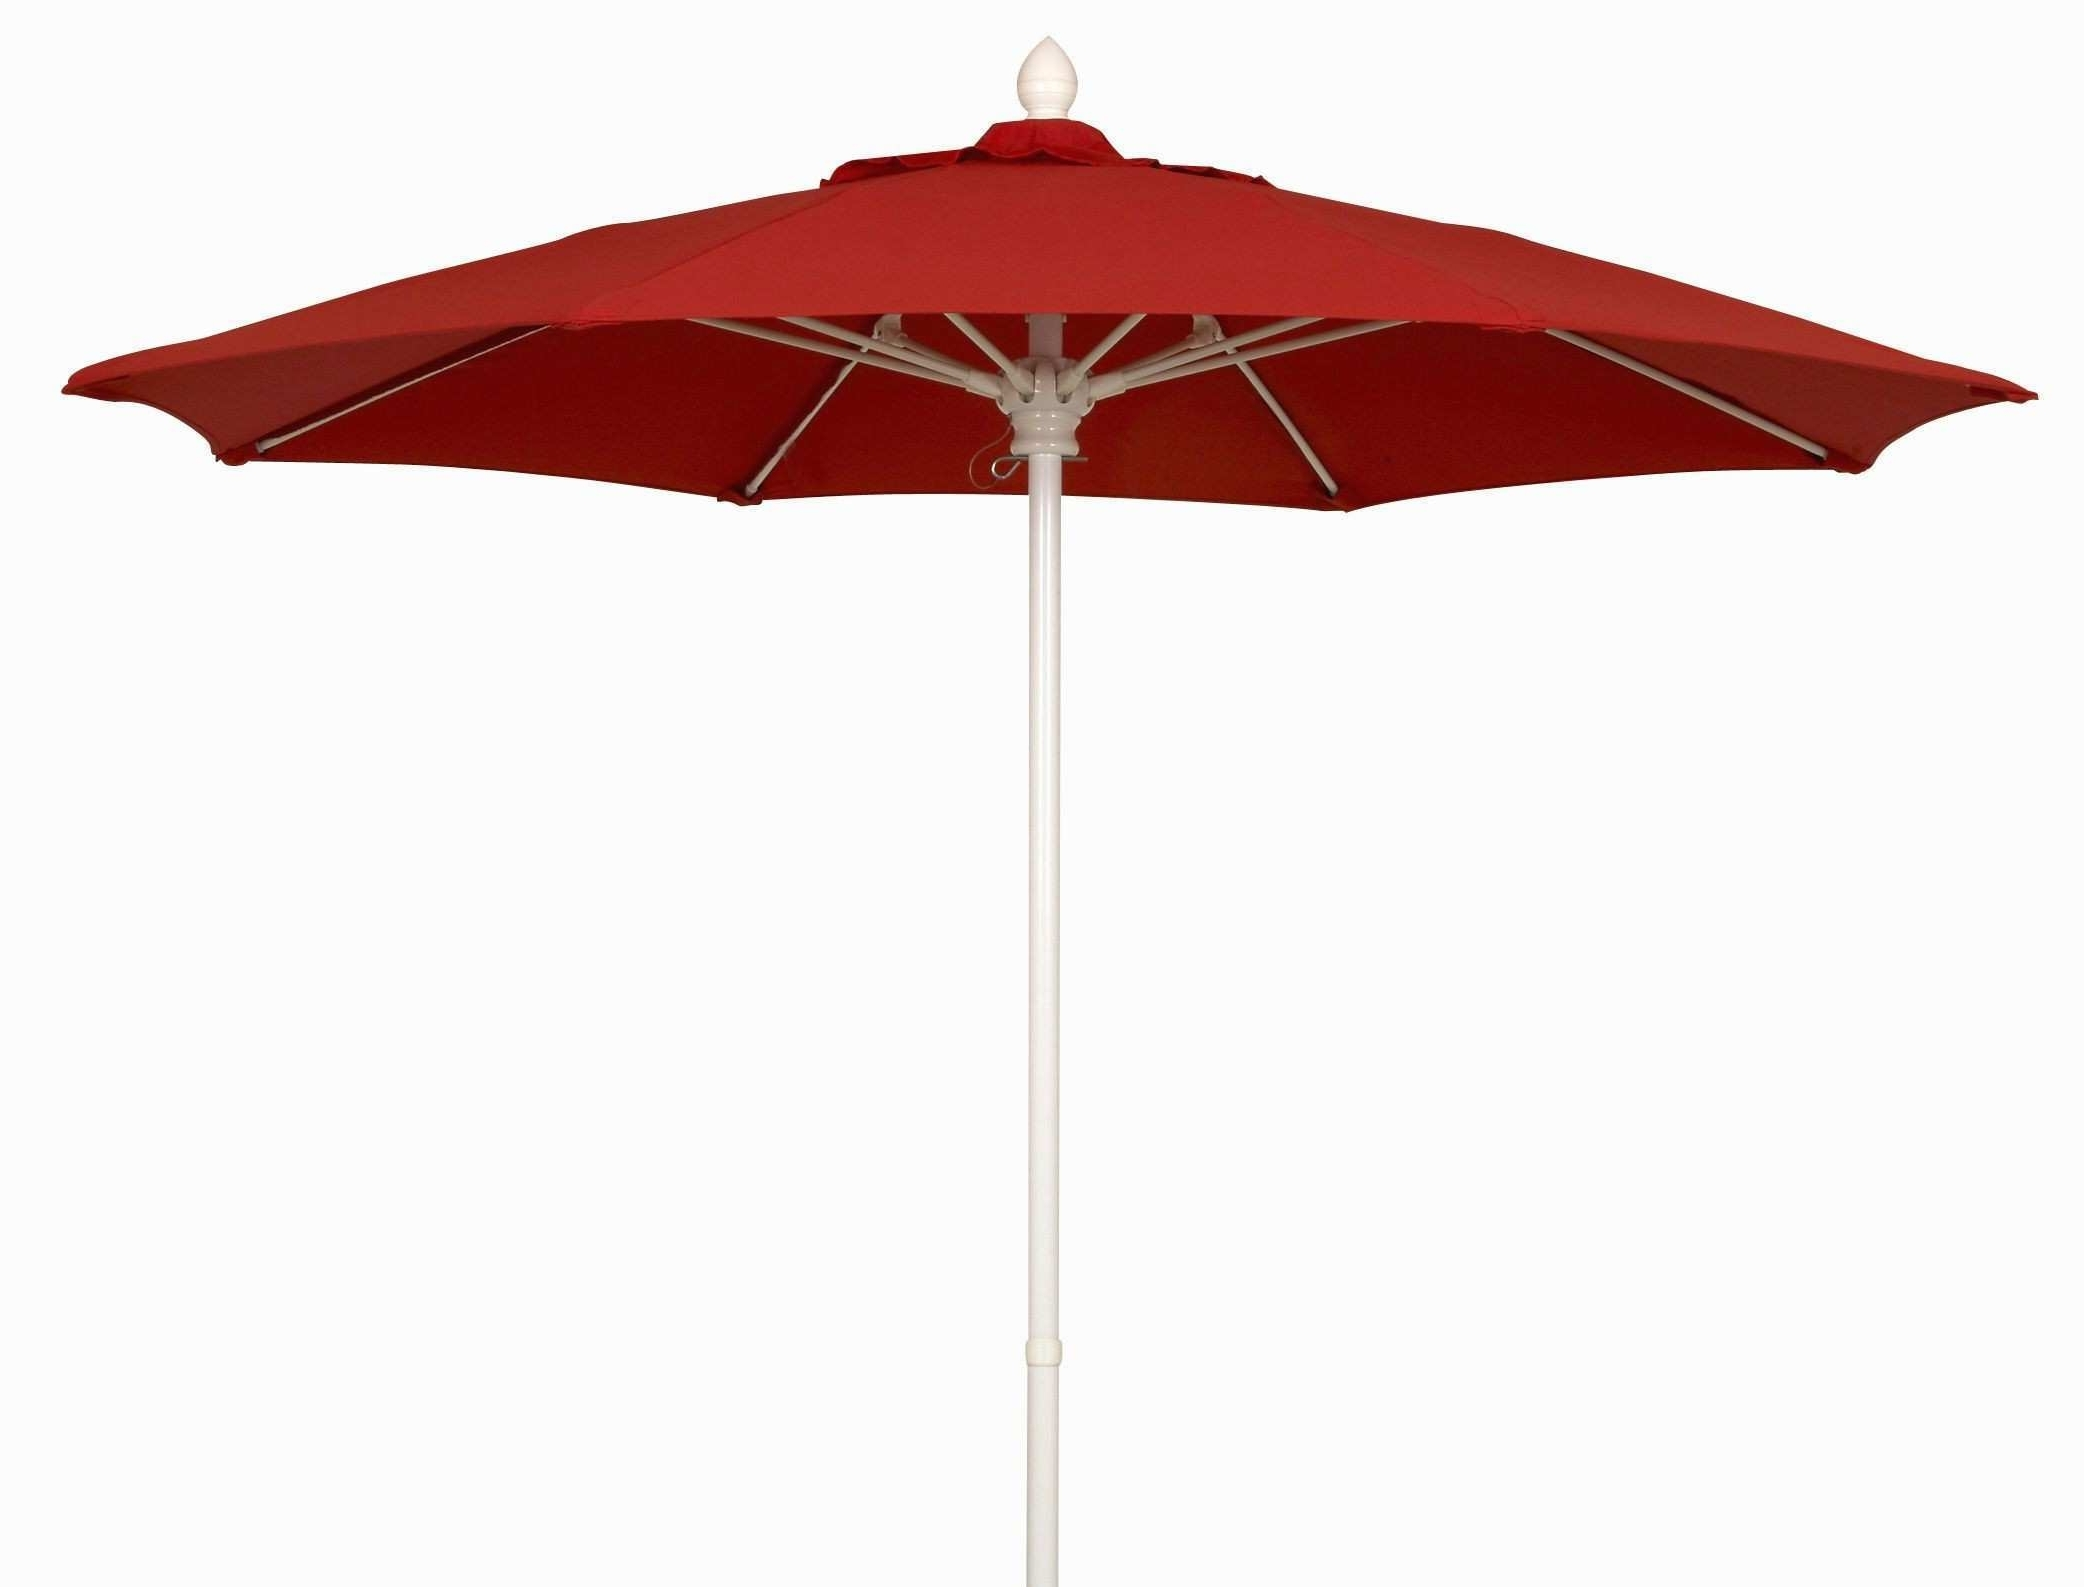 Recent 10 Ft Cantilever Patio Umbrella Elegant 6 Ft Patio Umbrella Pertaining To 6 Ft Patio Umbrellas (Gallery 8 of 20)